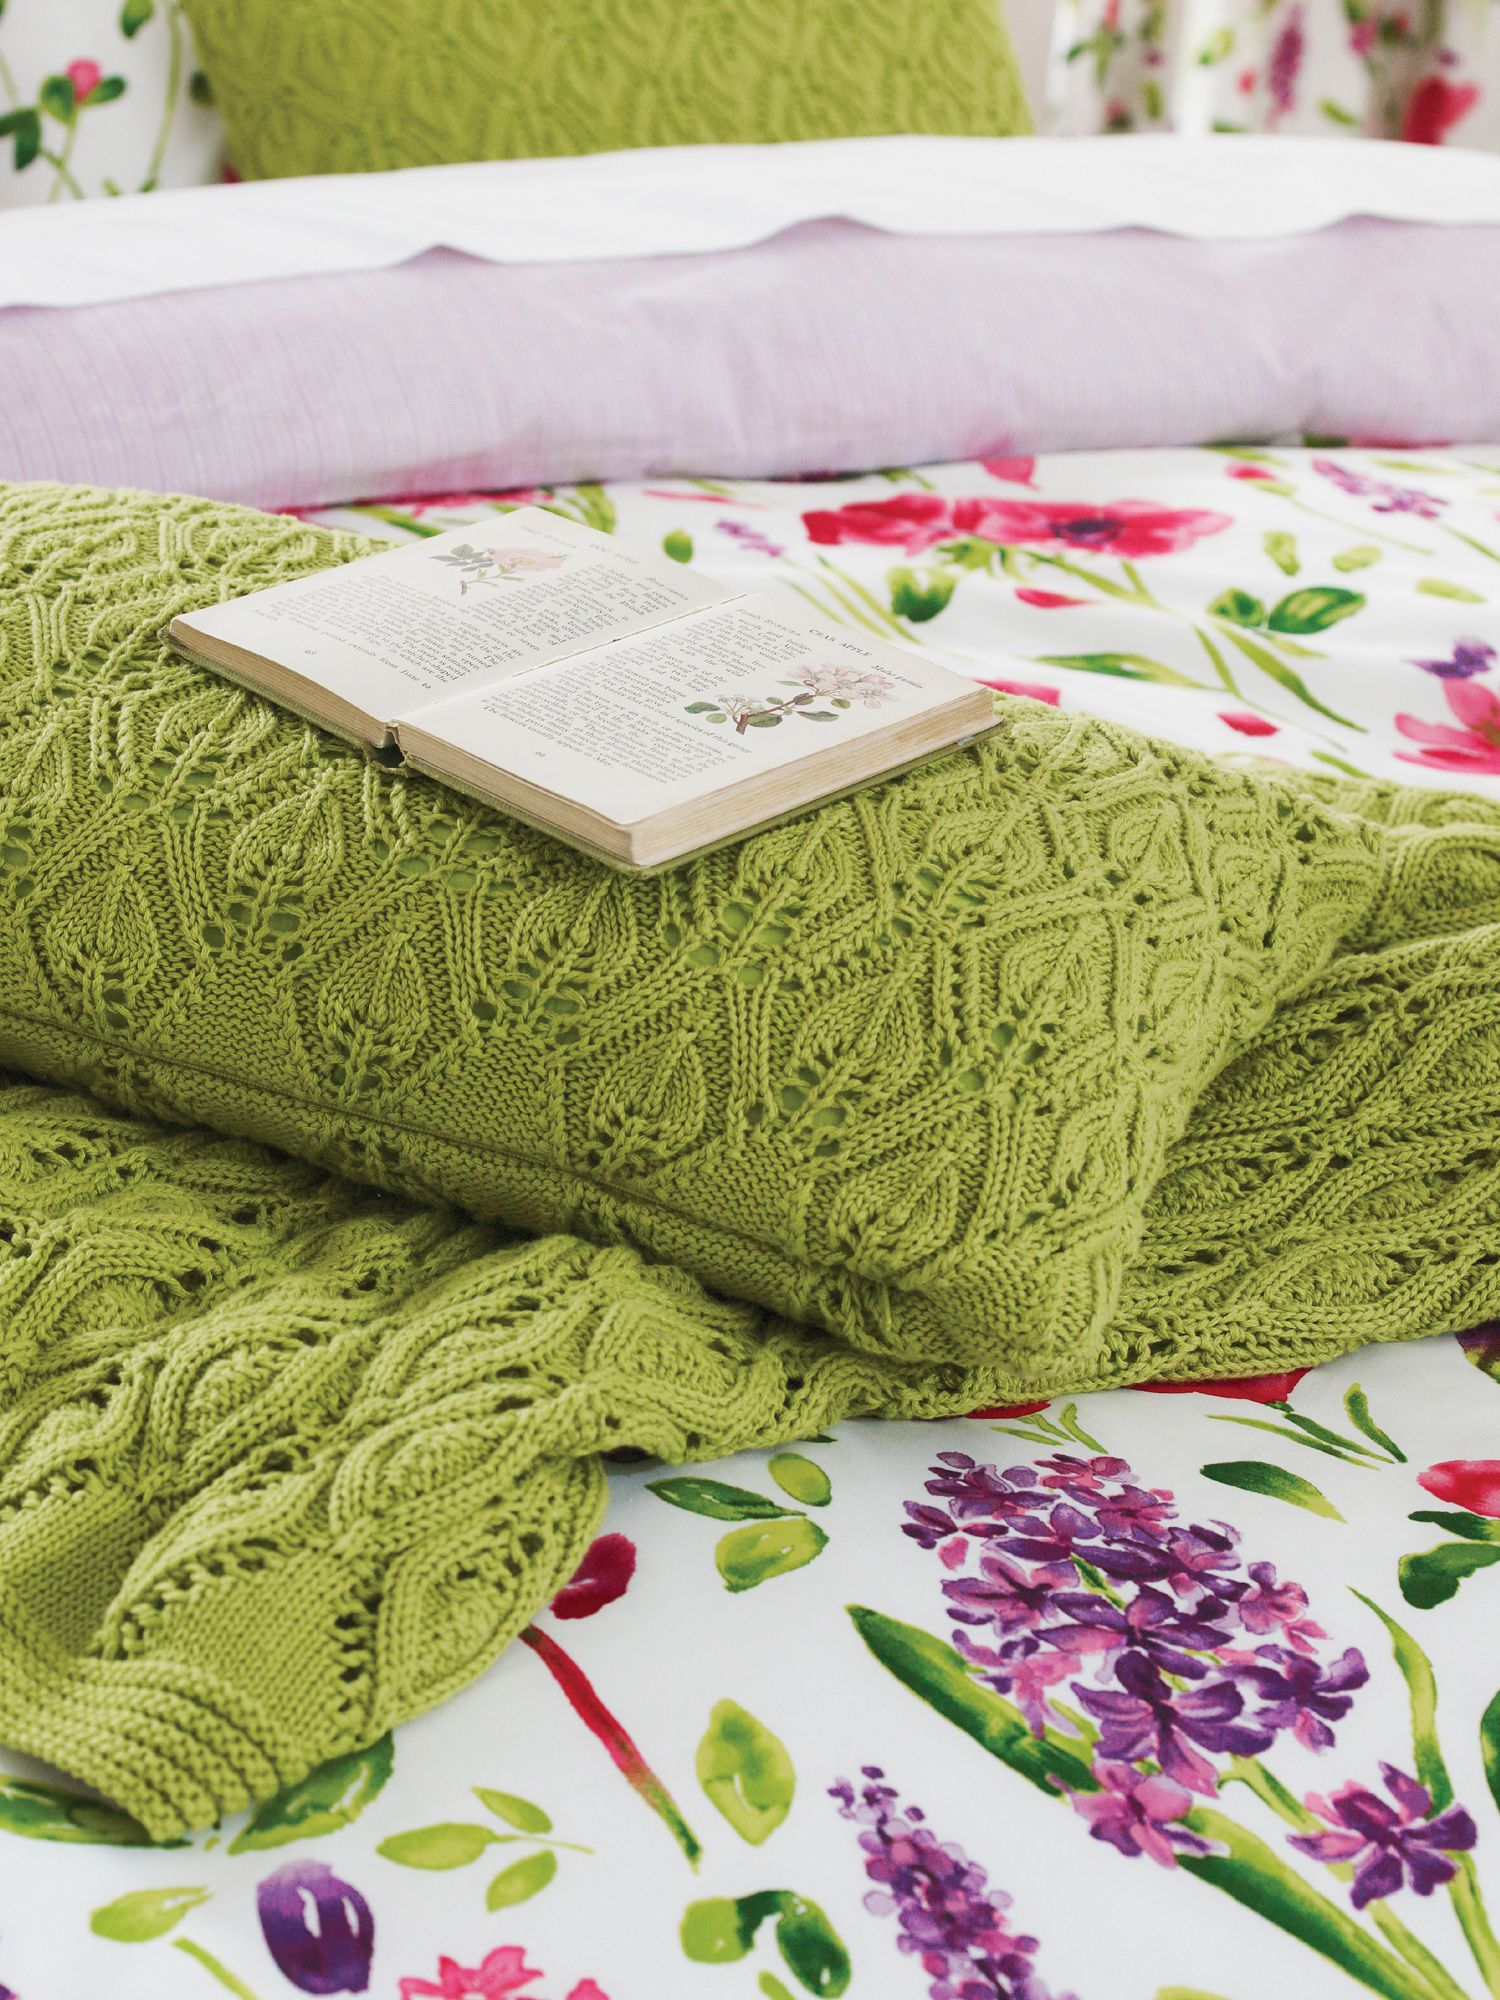 Spring flowers knitted throw 150x200cm green